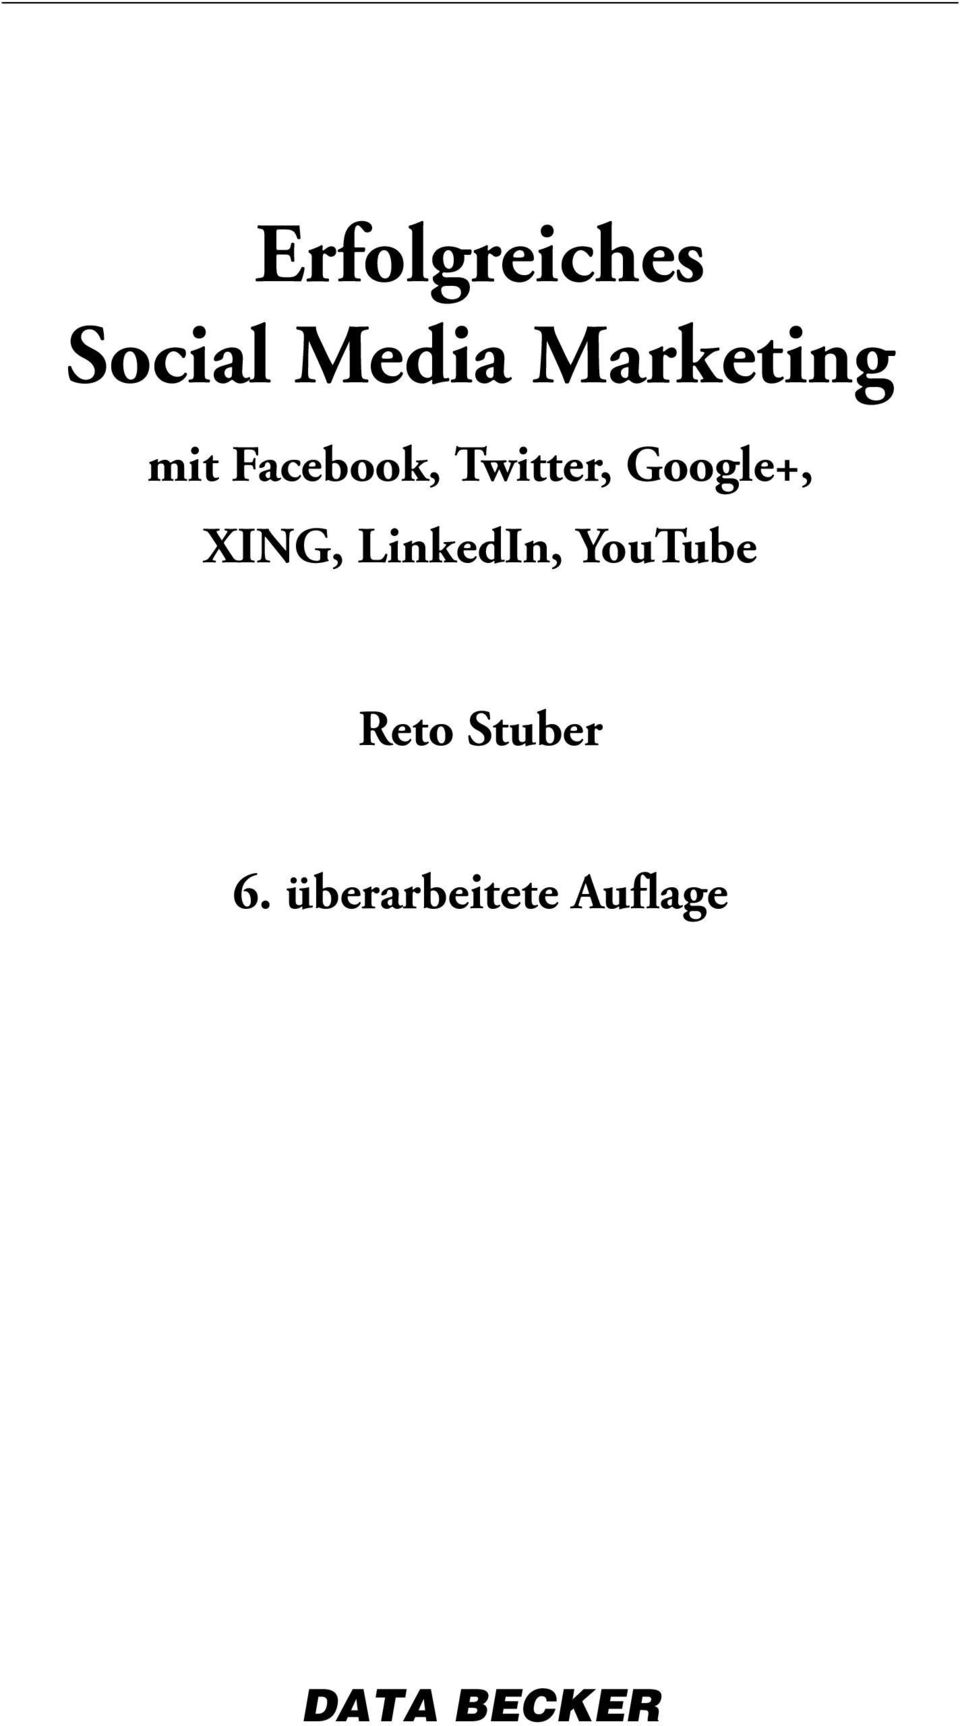 Google+, XING, LinkedIn, YouTube